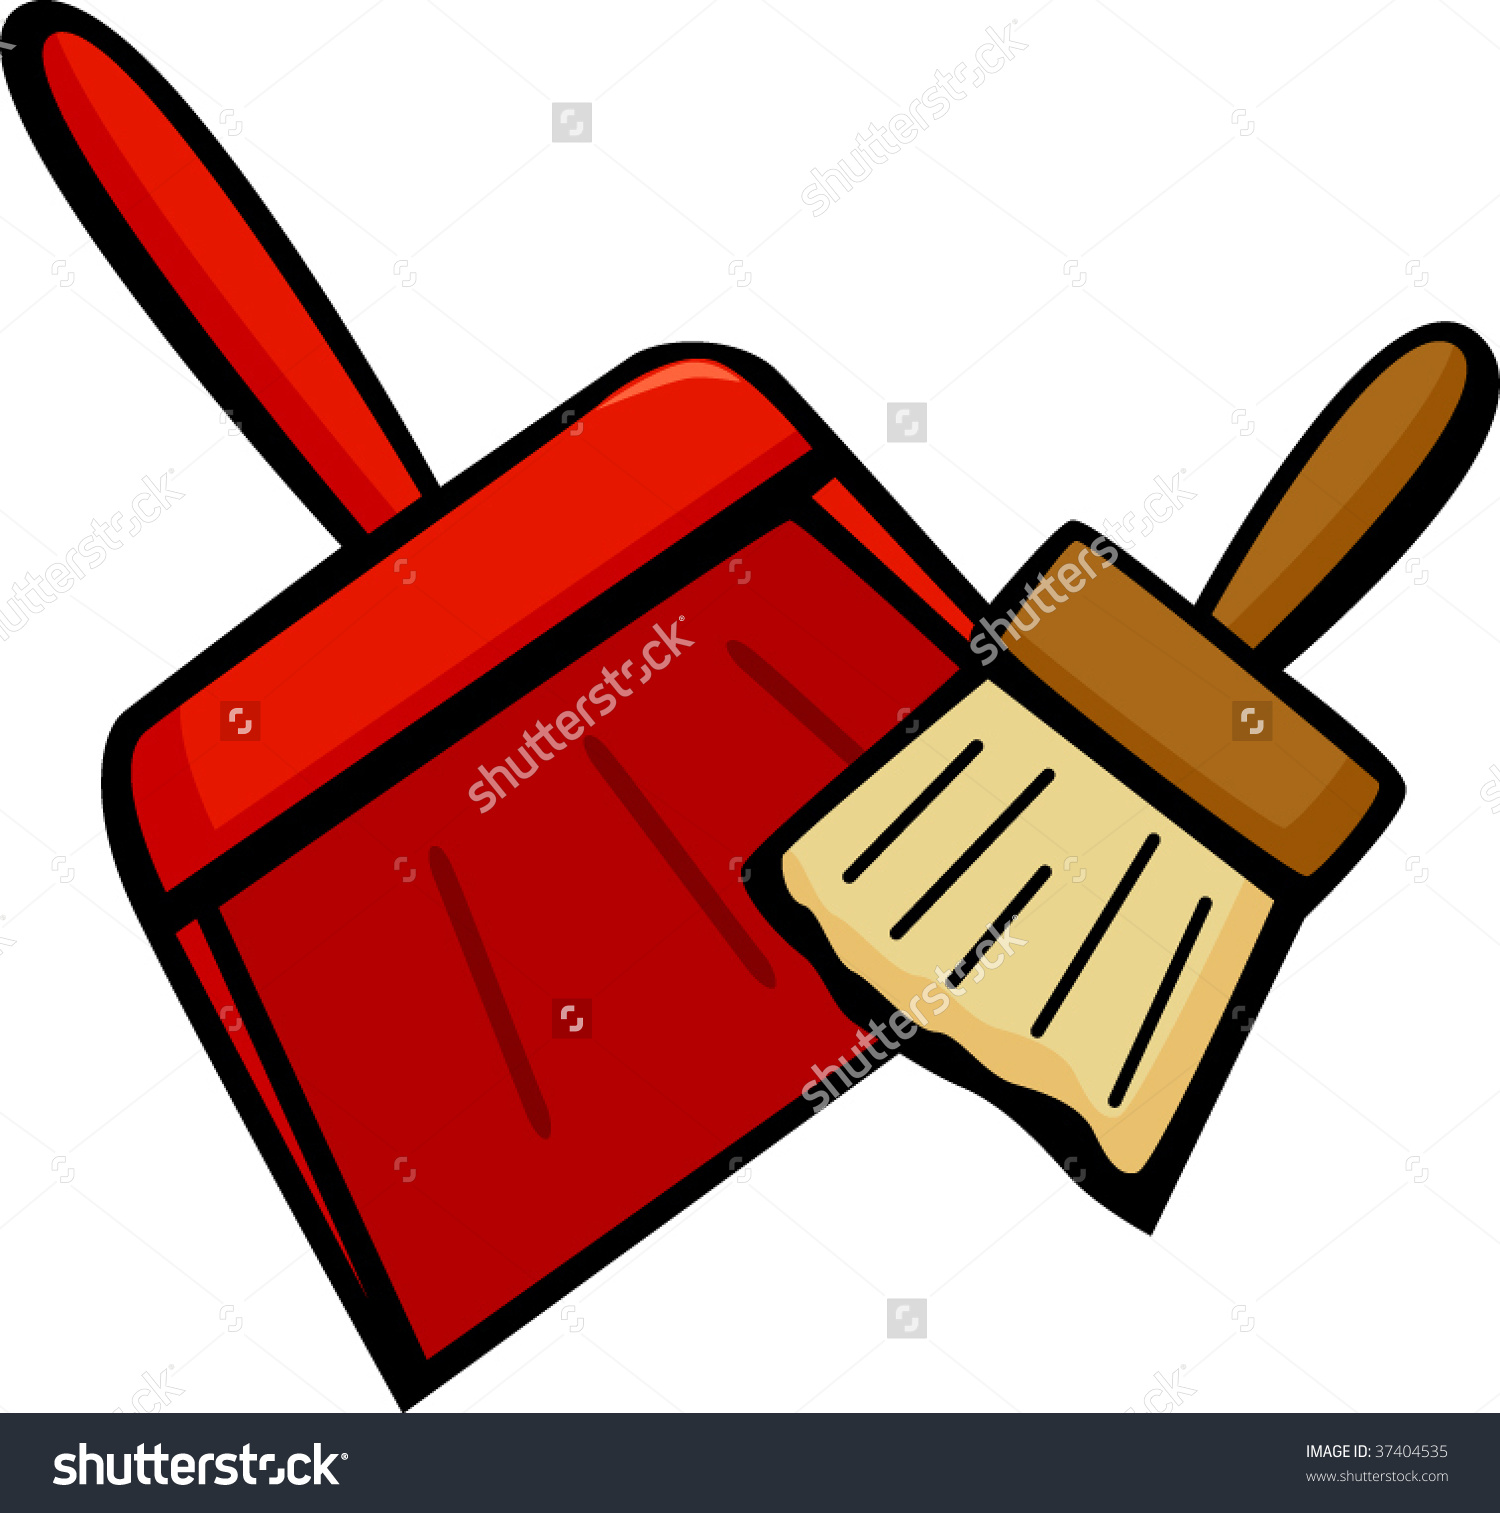 clip art stock Brushing clipart dust brush. Free download on webstockreview.